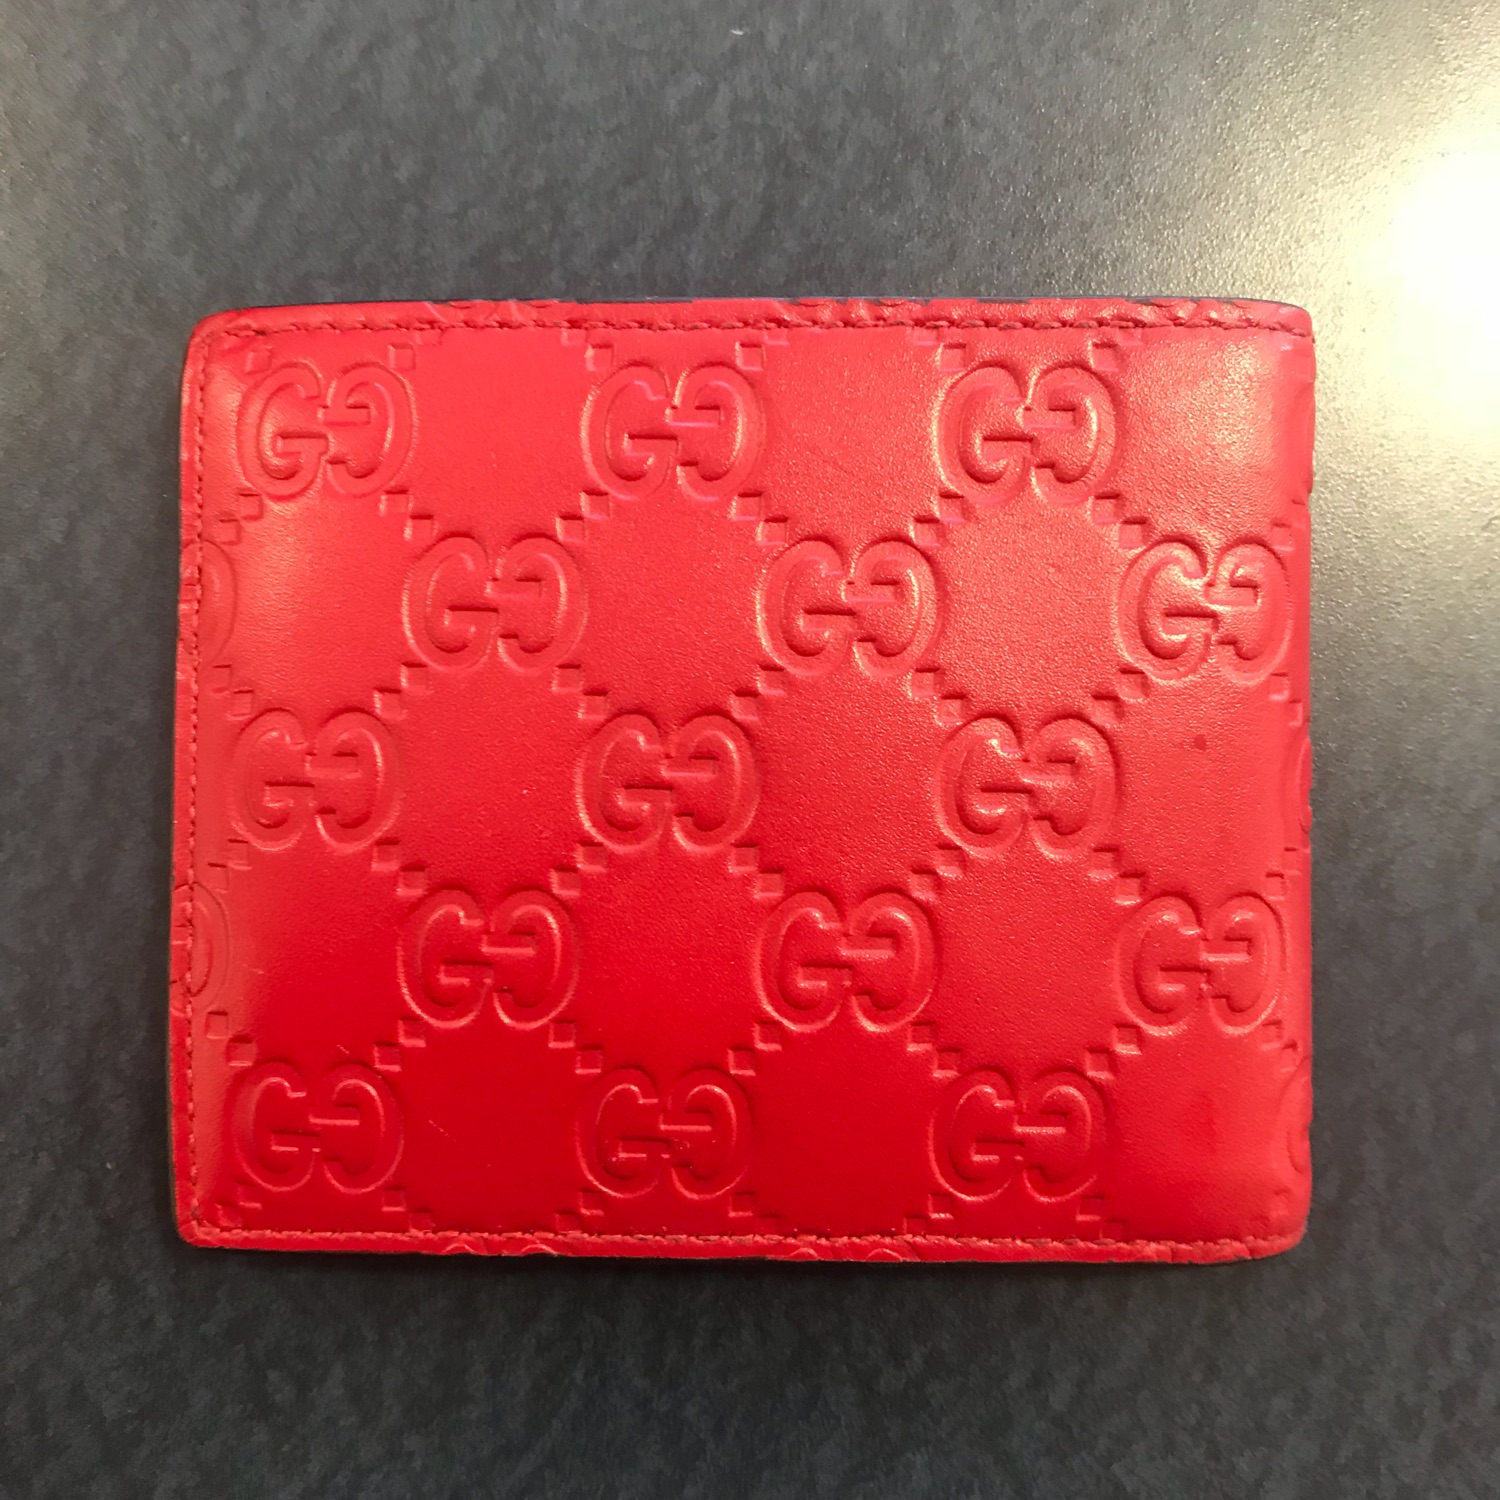 37276e648d1c44 Gucci Signature Wallet Leather- Red